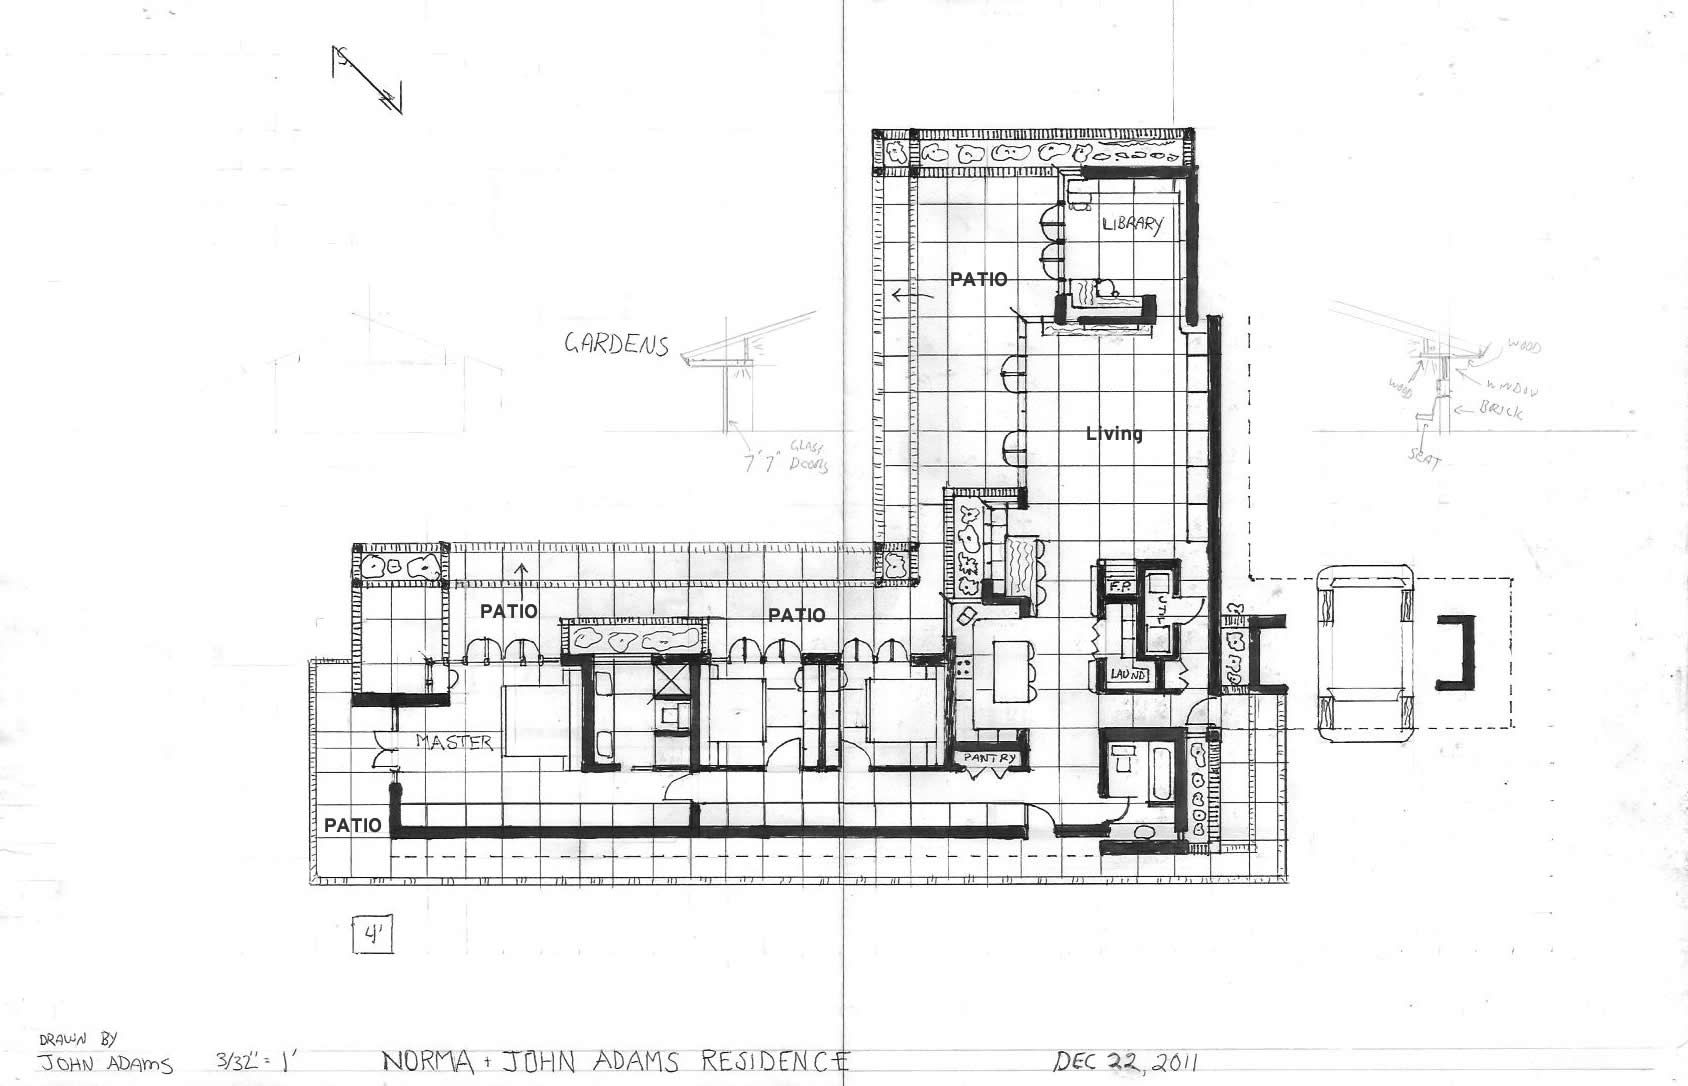 756864c9f0daa5db983f0e4d72fd365c plan houses design frank lloyd wright pesquisa google,Small Frank Lloyd Wright House Plans